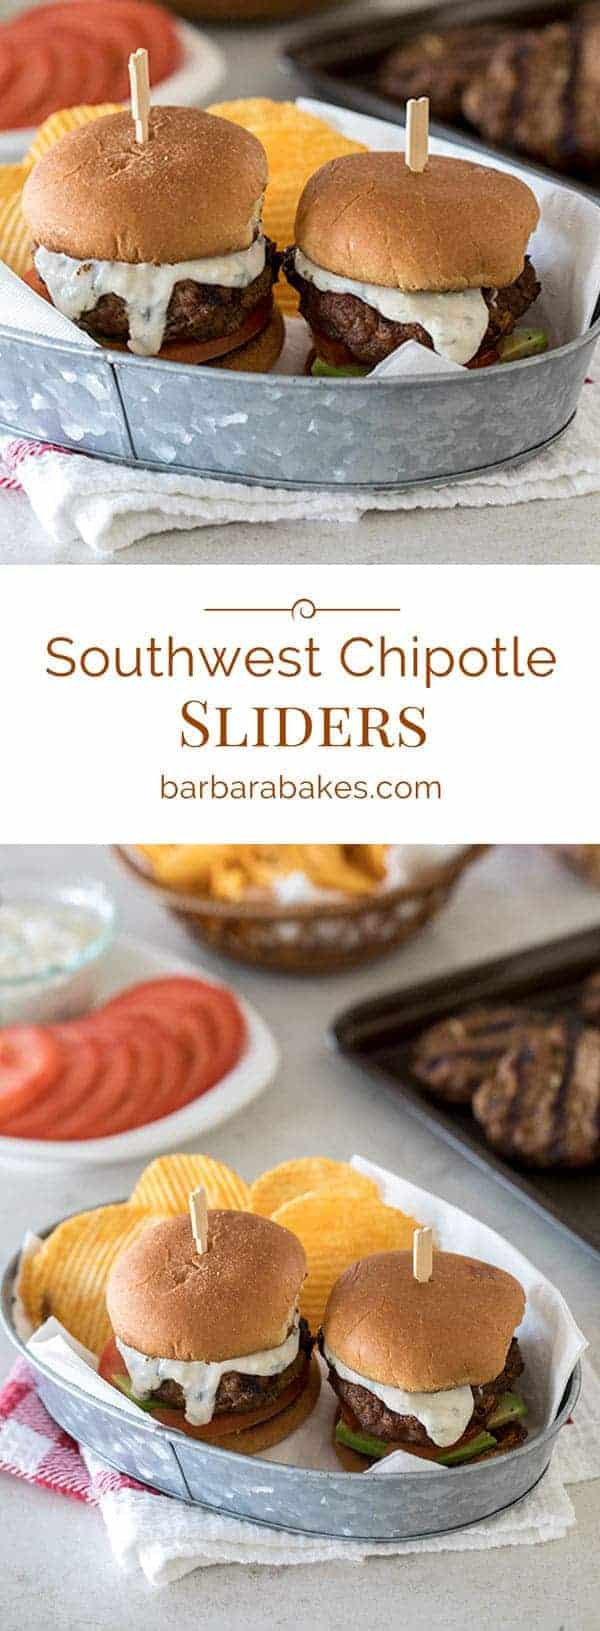 Southwest Chipotle Sliders photo collage